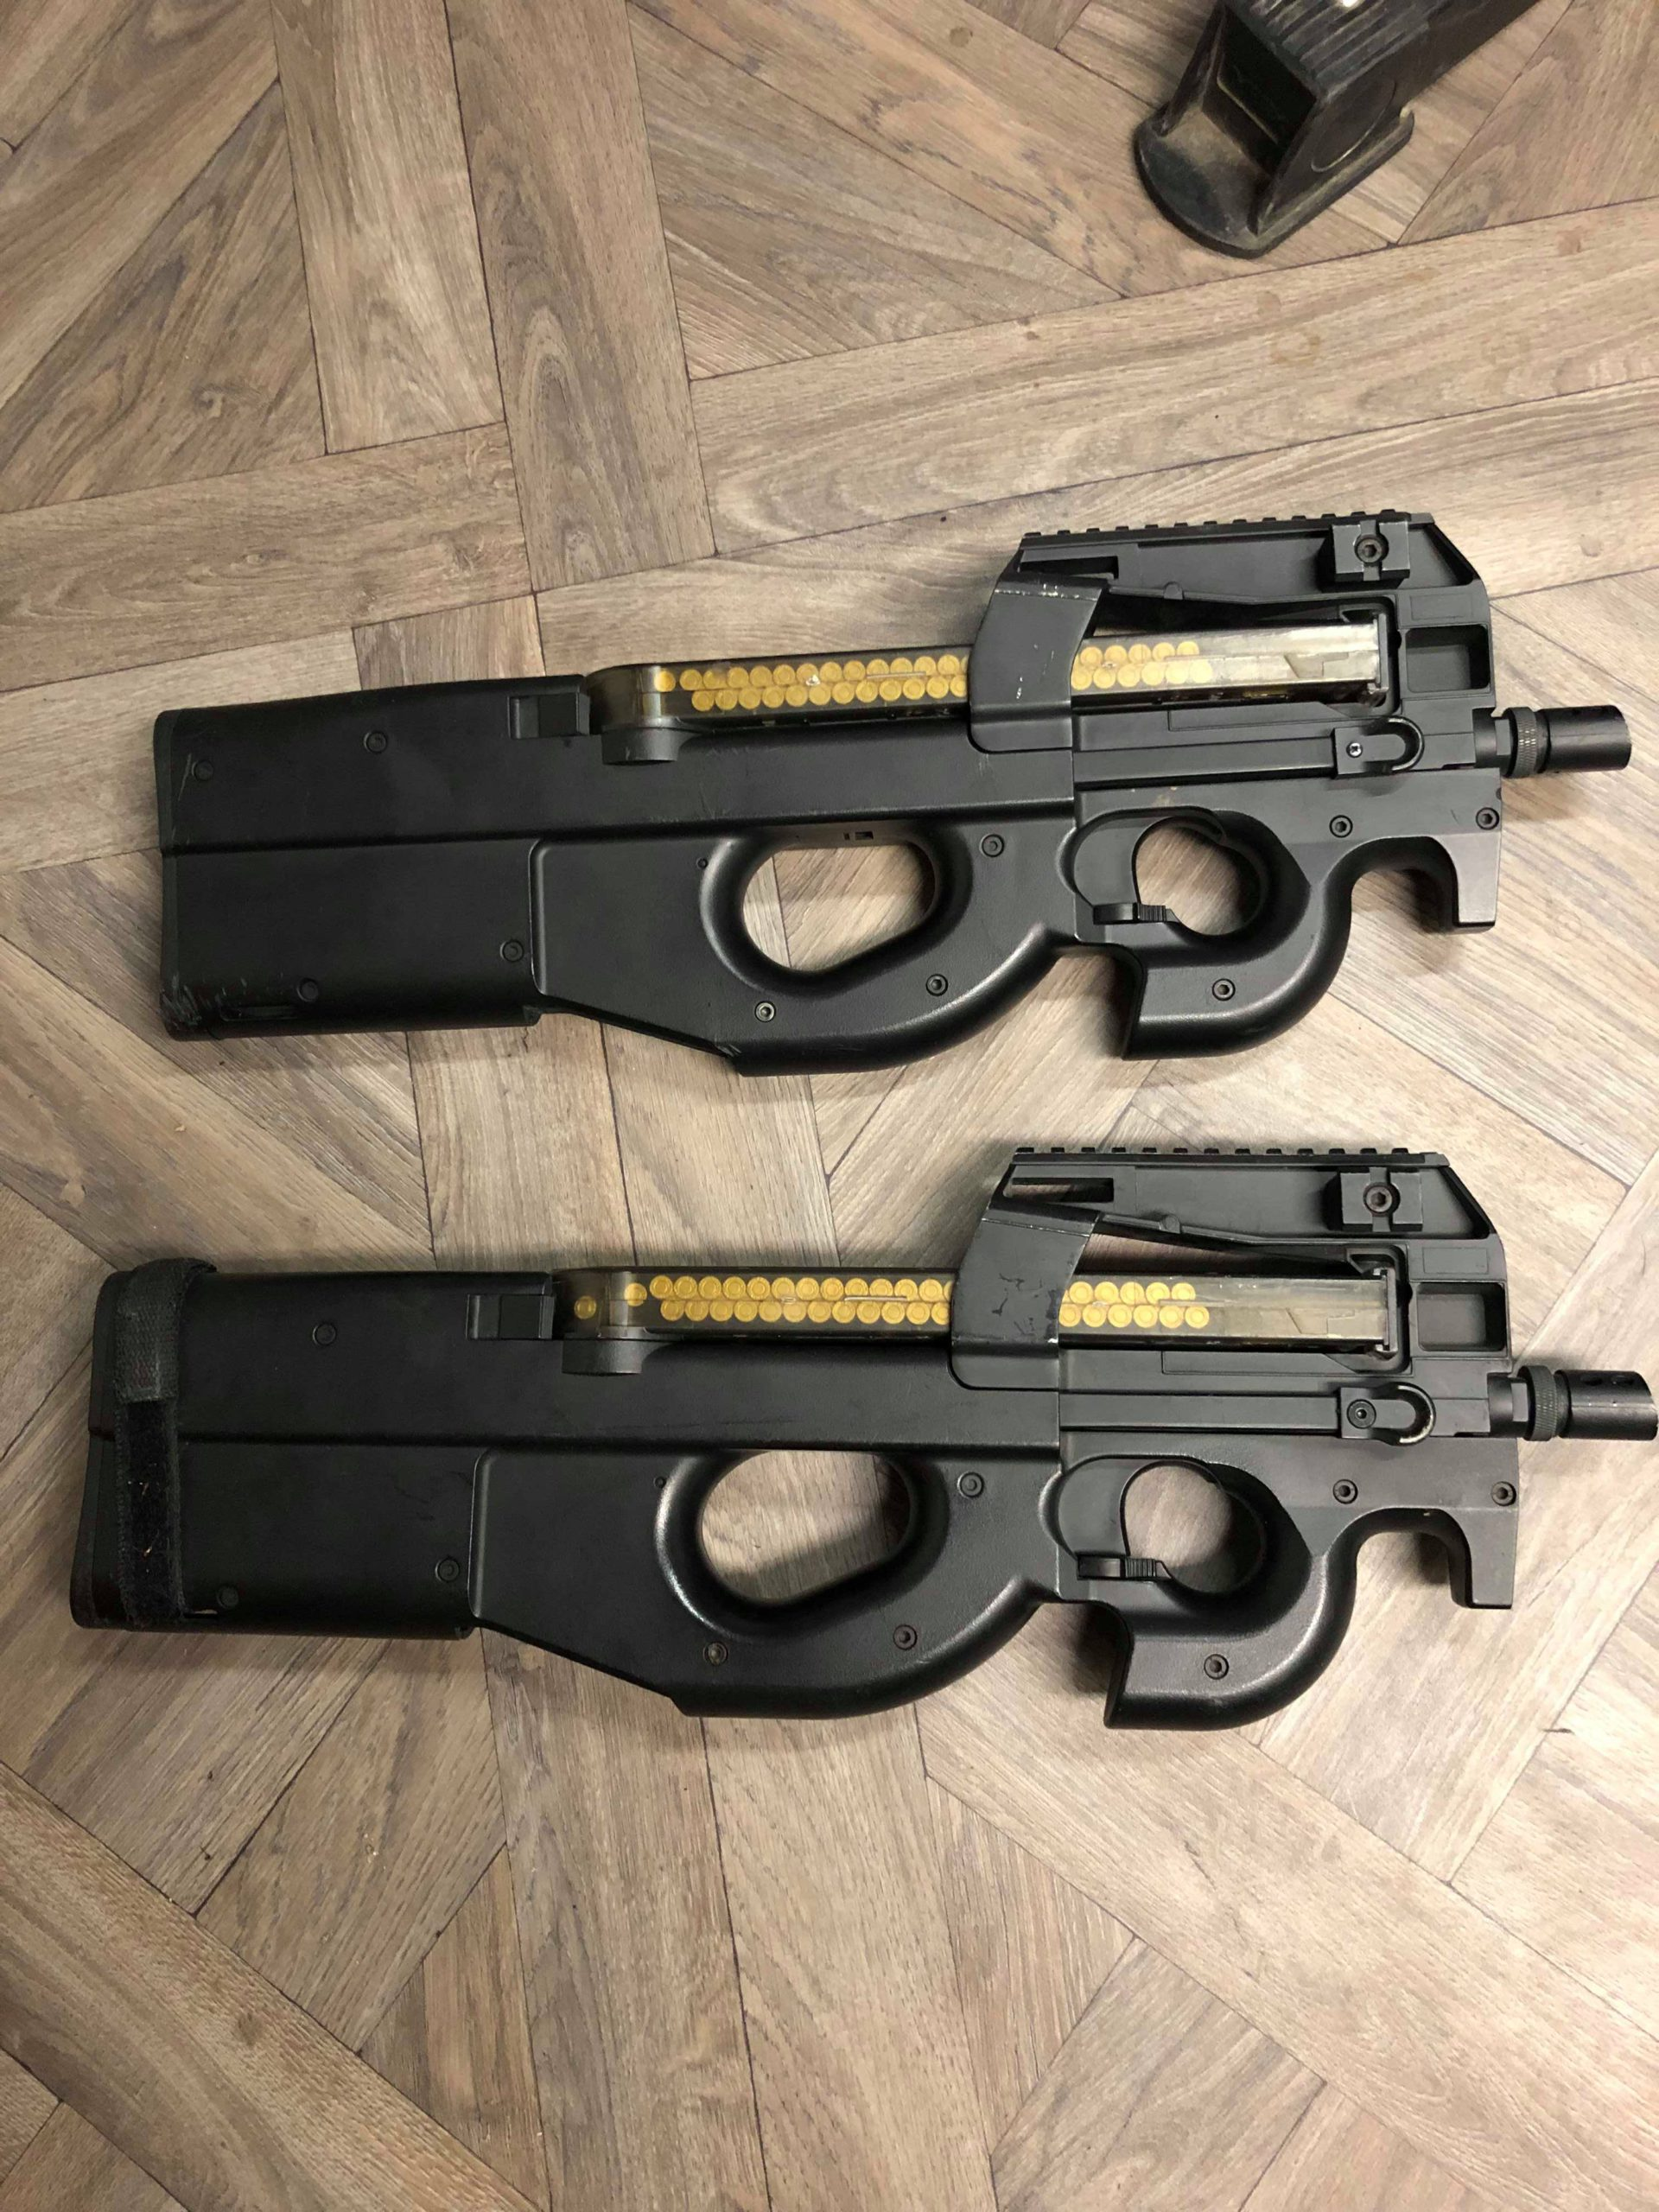 2 P90 + 5 chargeurs